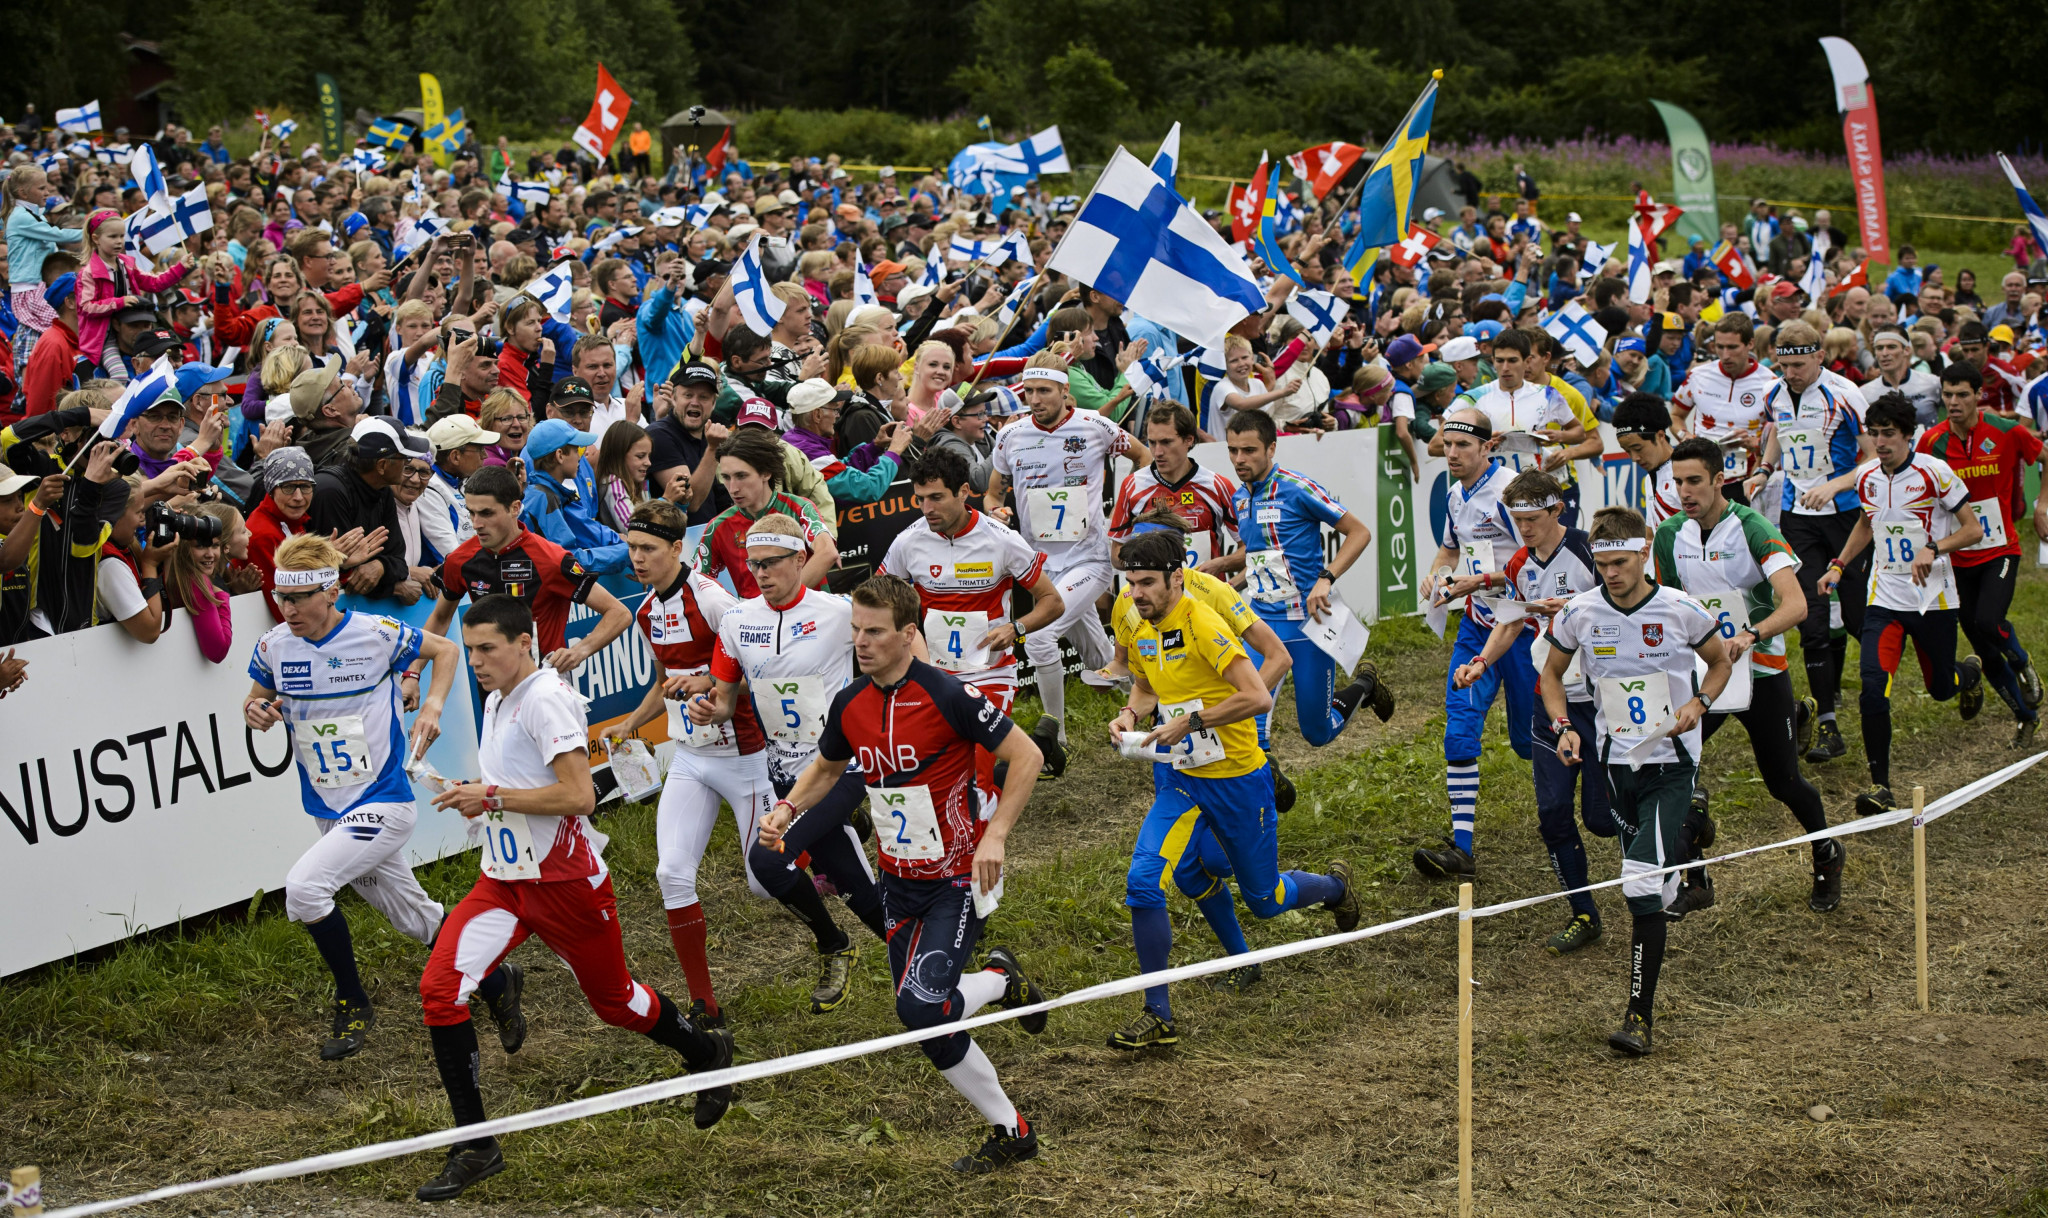 Orienteering world ranking events can resume from August 1 ©Getty Images